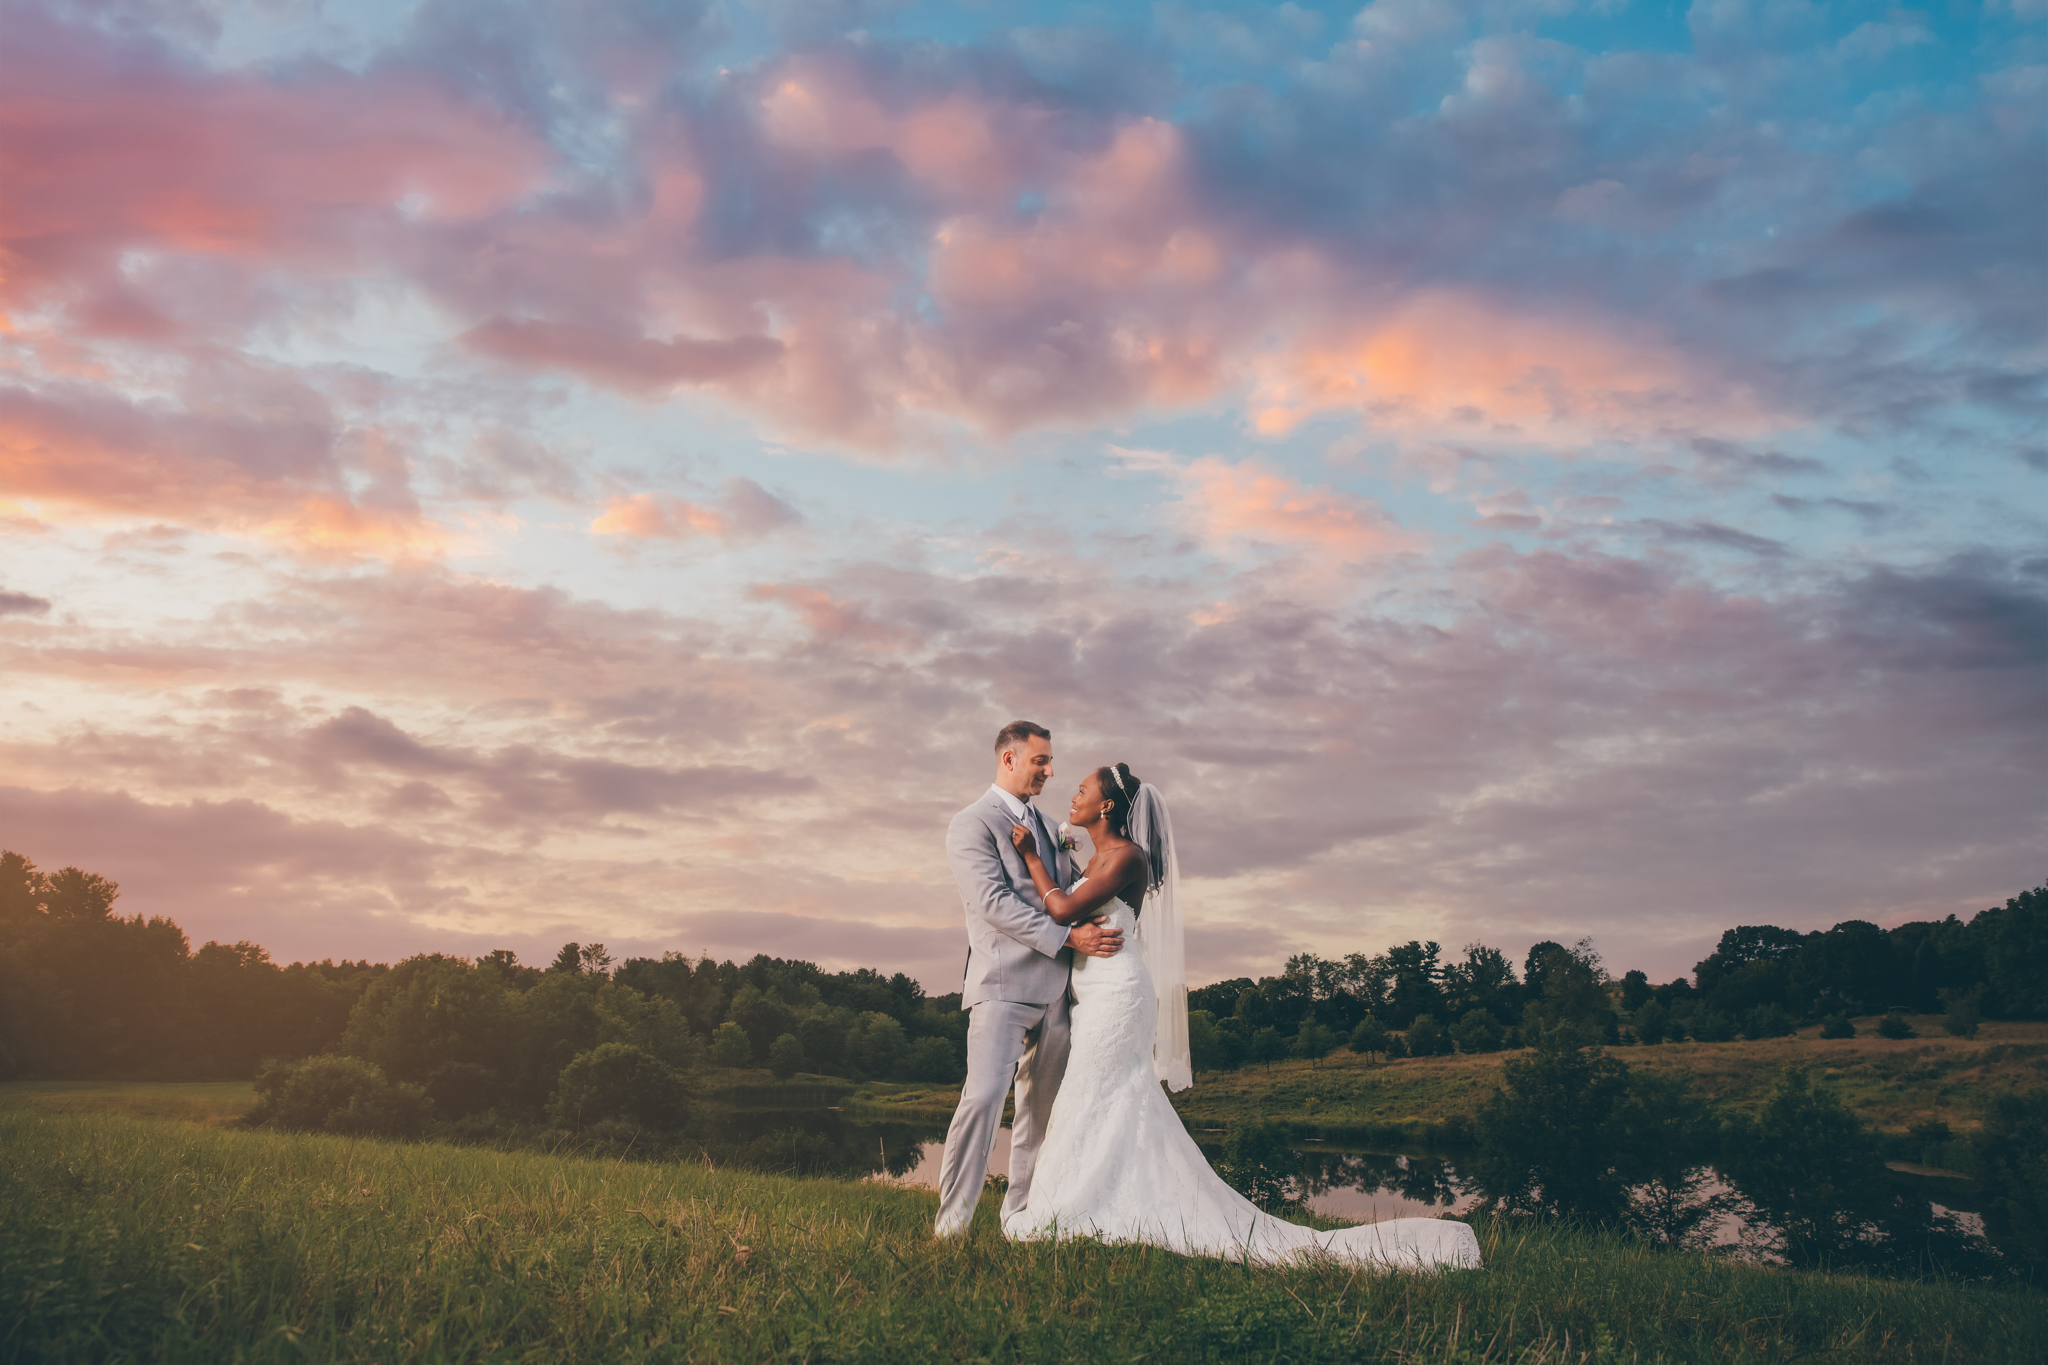 new-hampshire-wedding-photographer-chris-keeley-photography-34.jpg